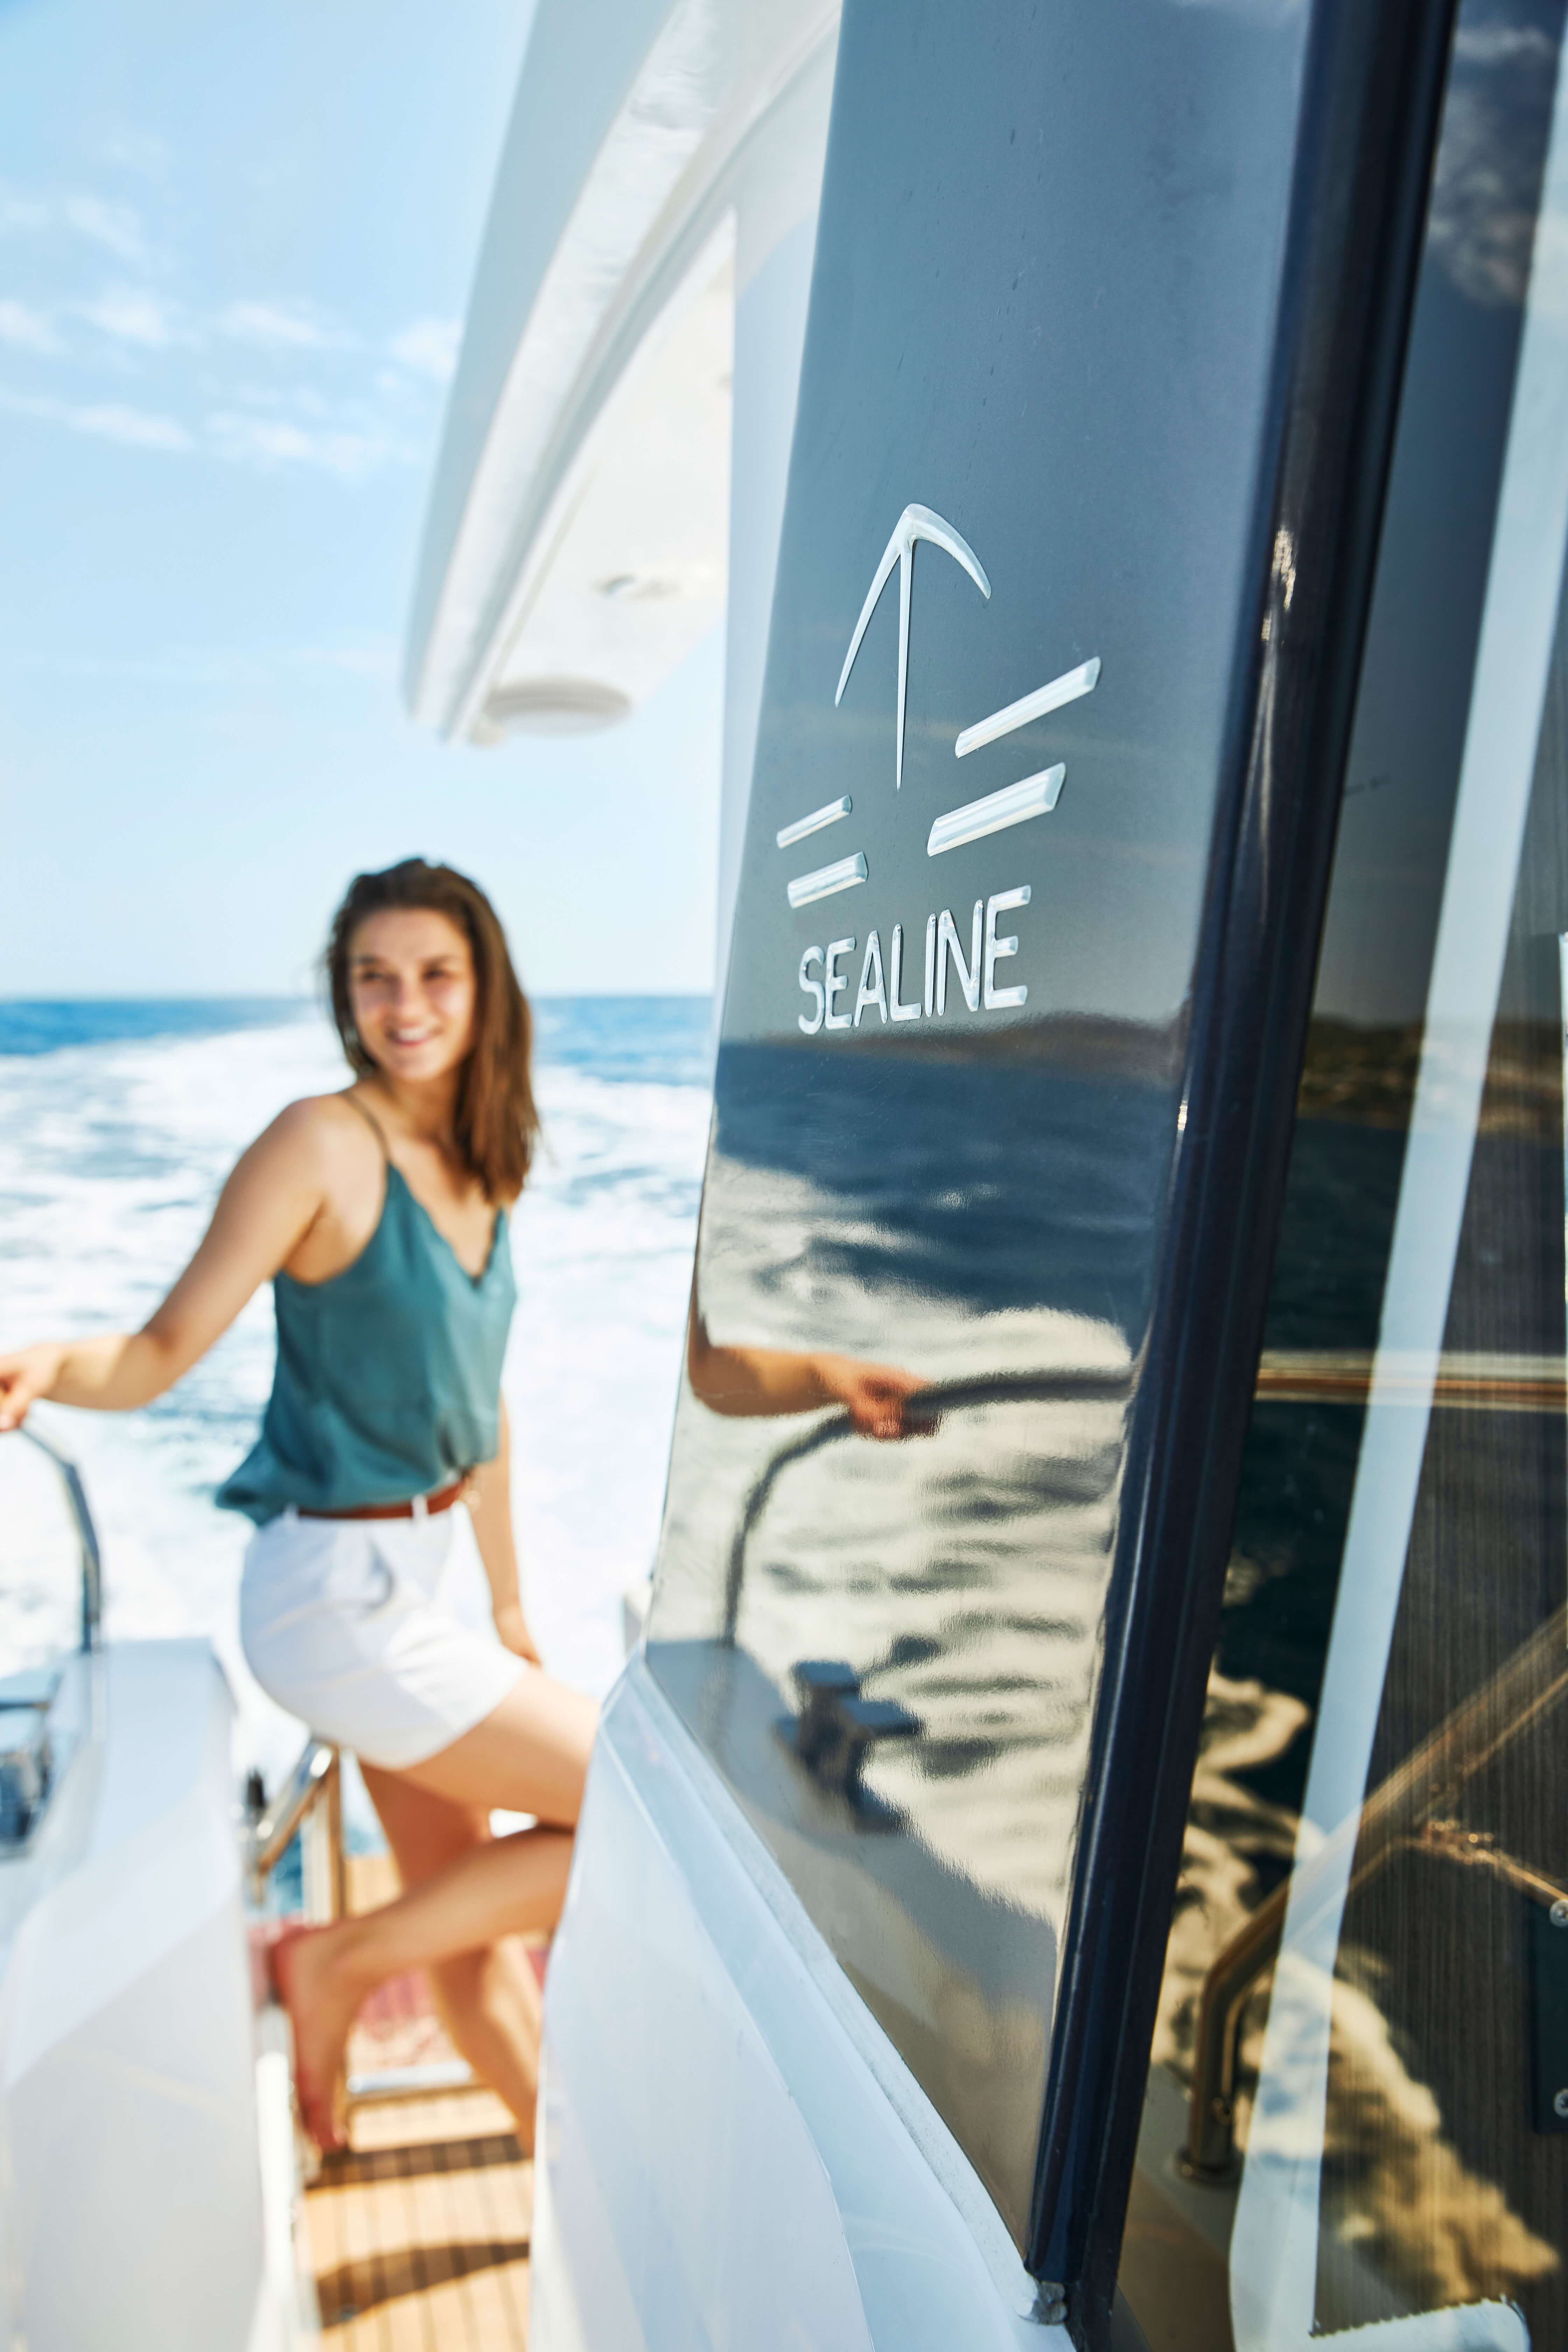 Sealine C390v deck | Deck detail | Sealine